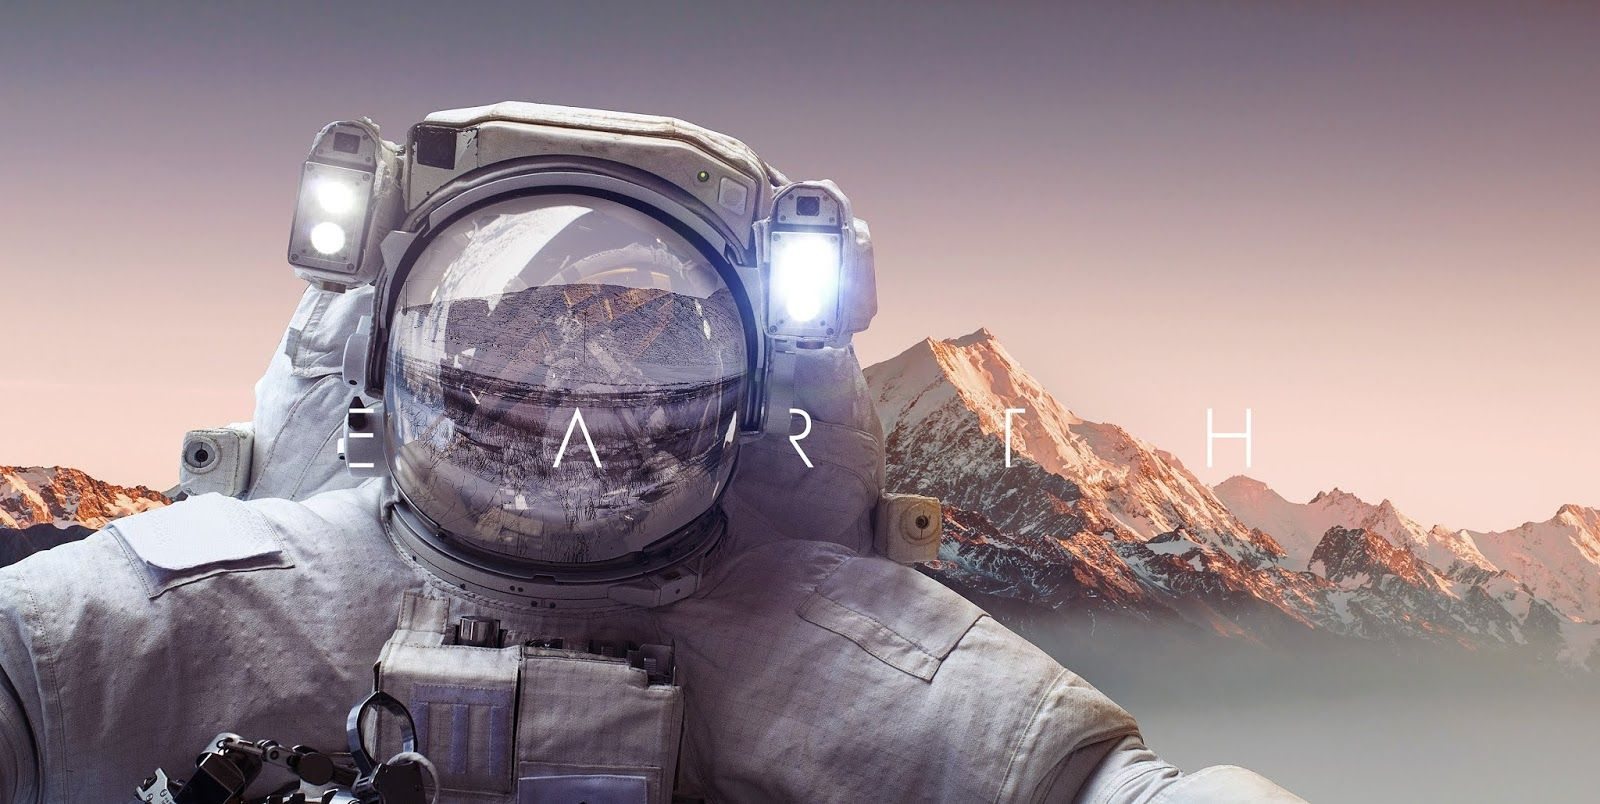 Astronaut Earth Spacesuit 4k Space In 2020 Astronaut Wallpaper Space Images Astronaut